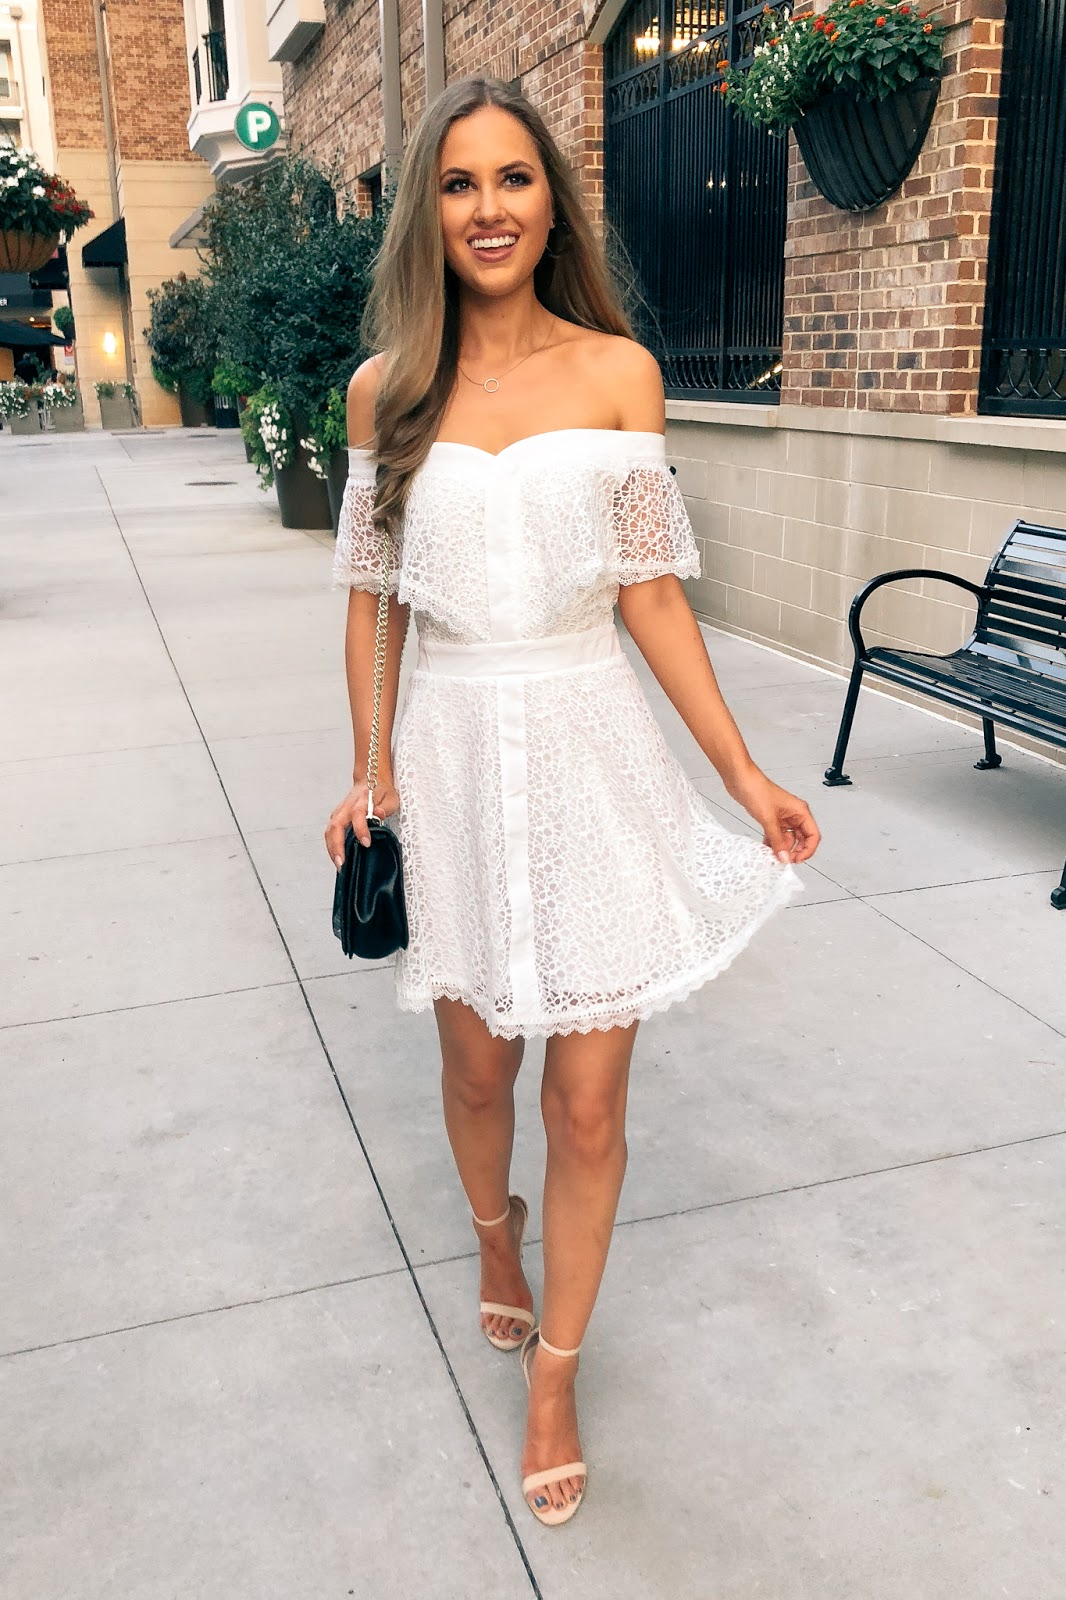 White Bridal Shower Dresses Under $100